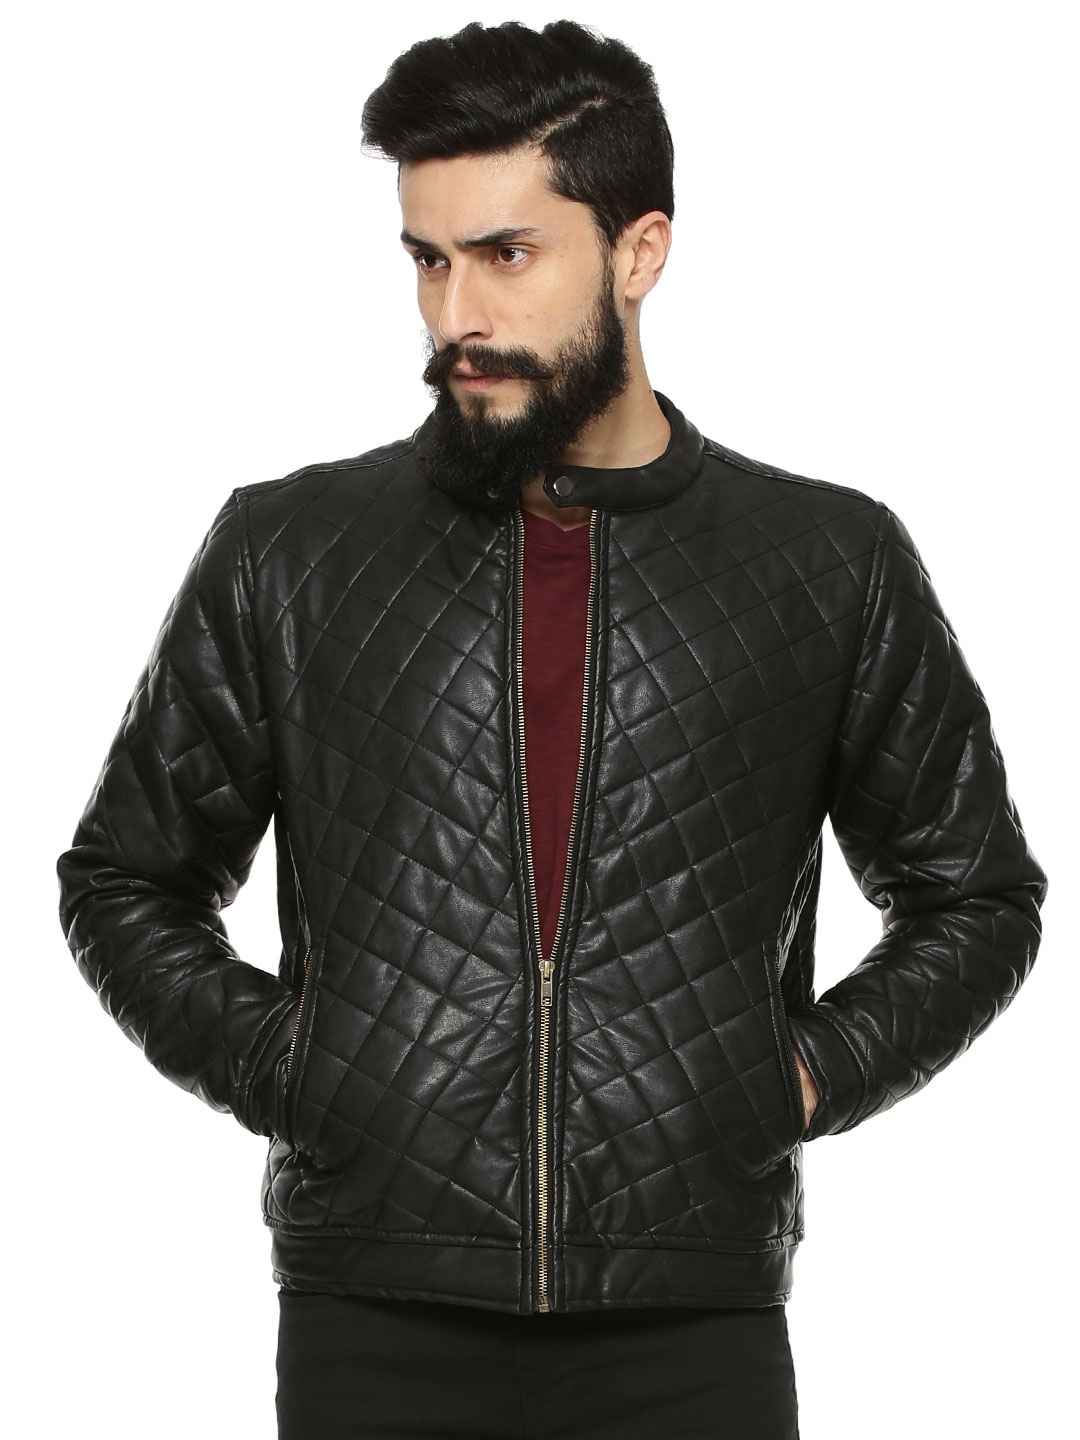 Atorse Biker Jacket With Quilt...